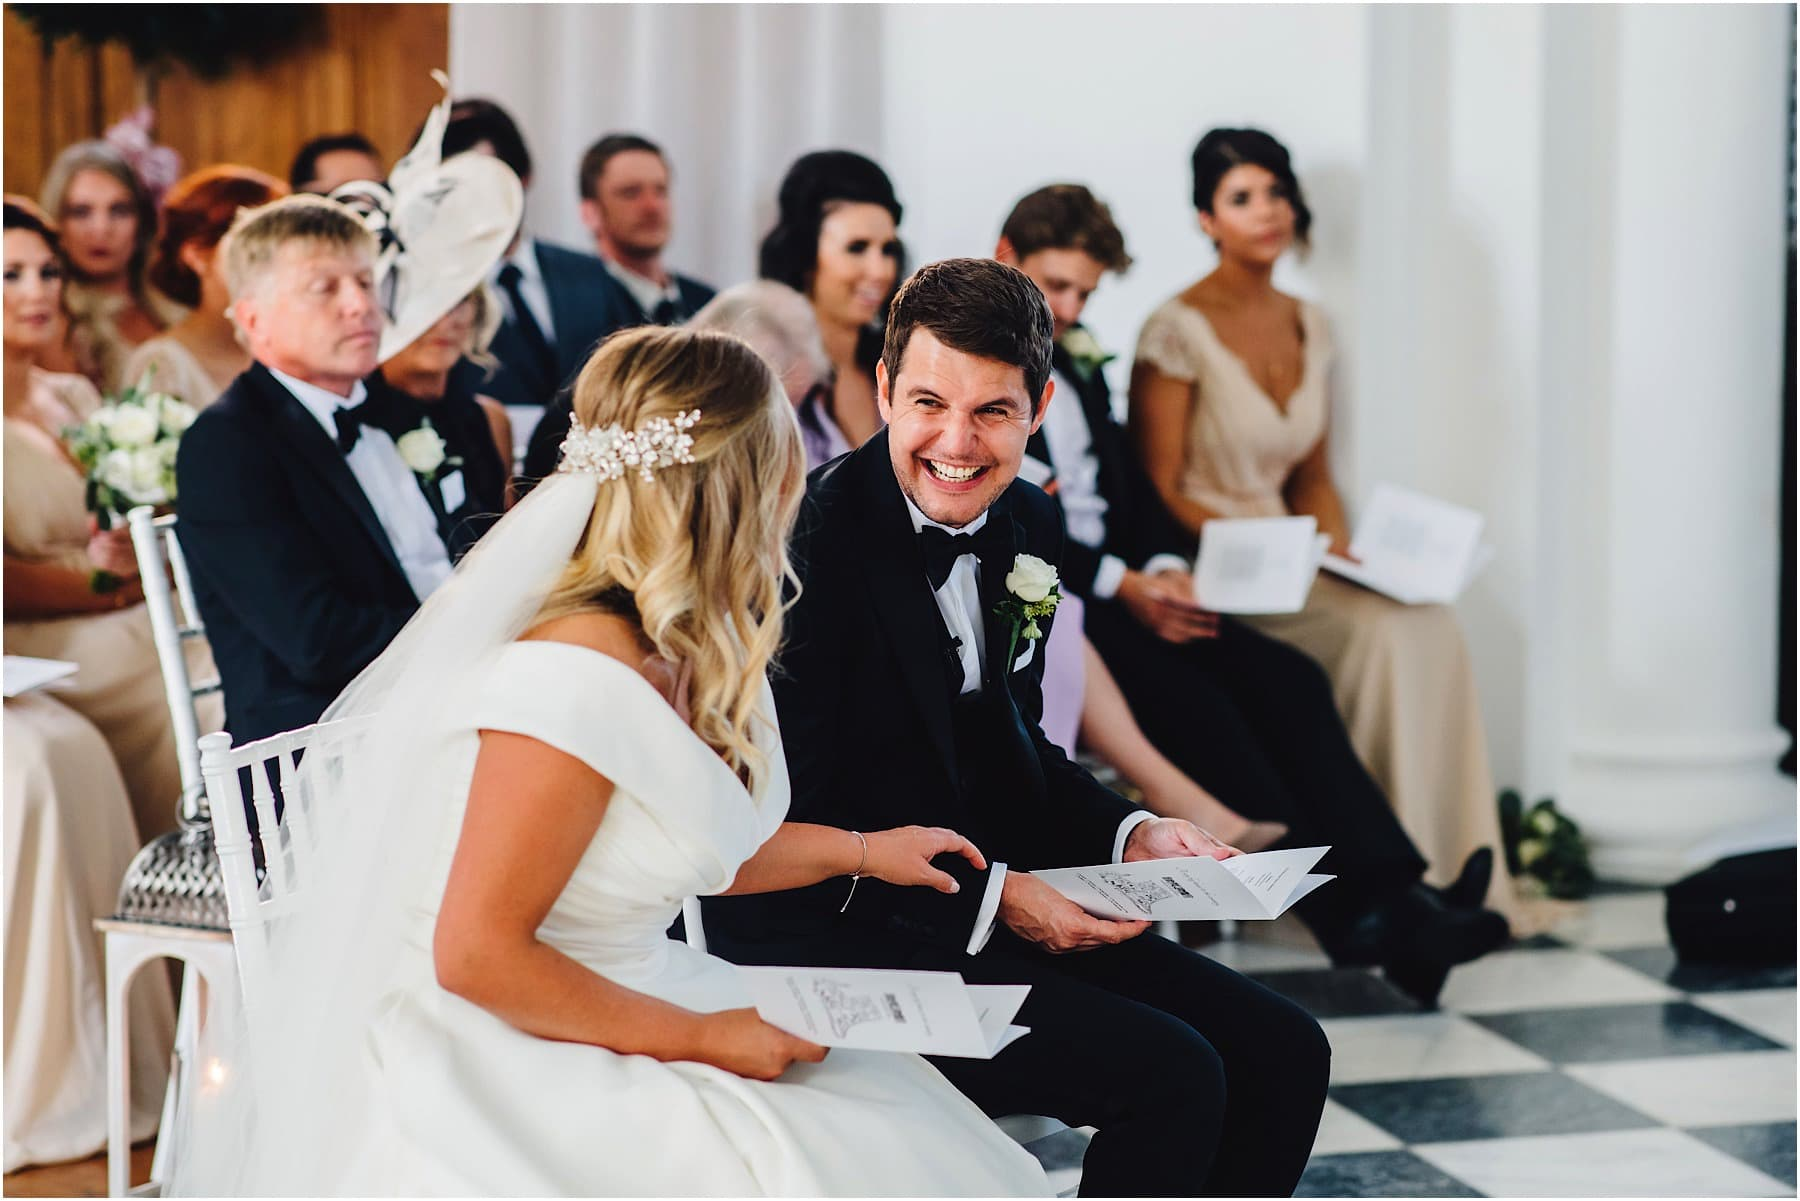 groom bursting into laughter at his bride